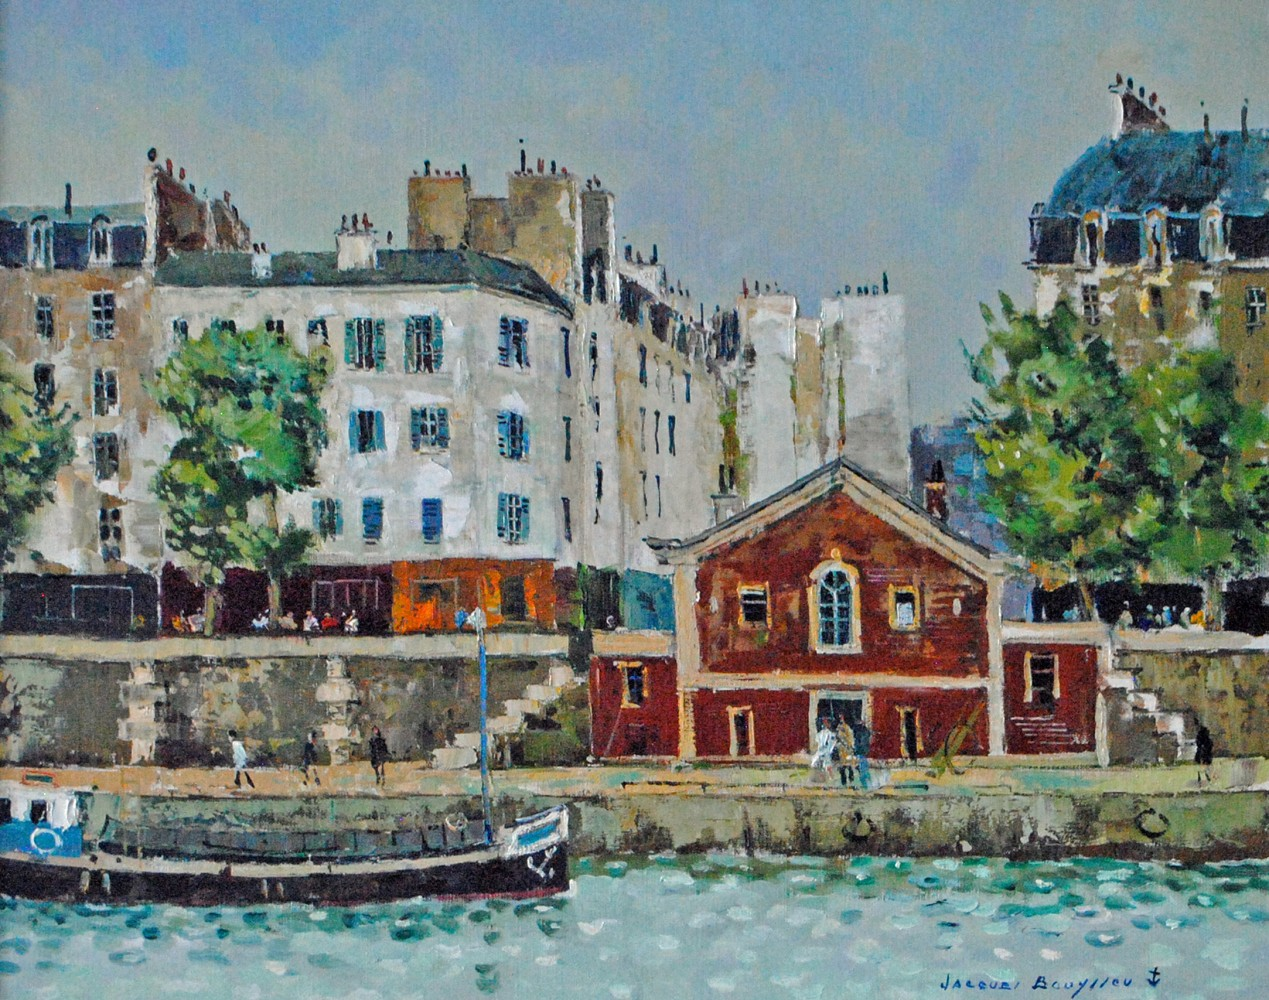 Paris - Quai De Paris 1985 35x41